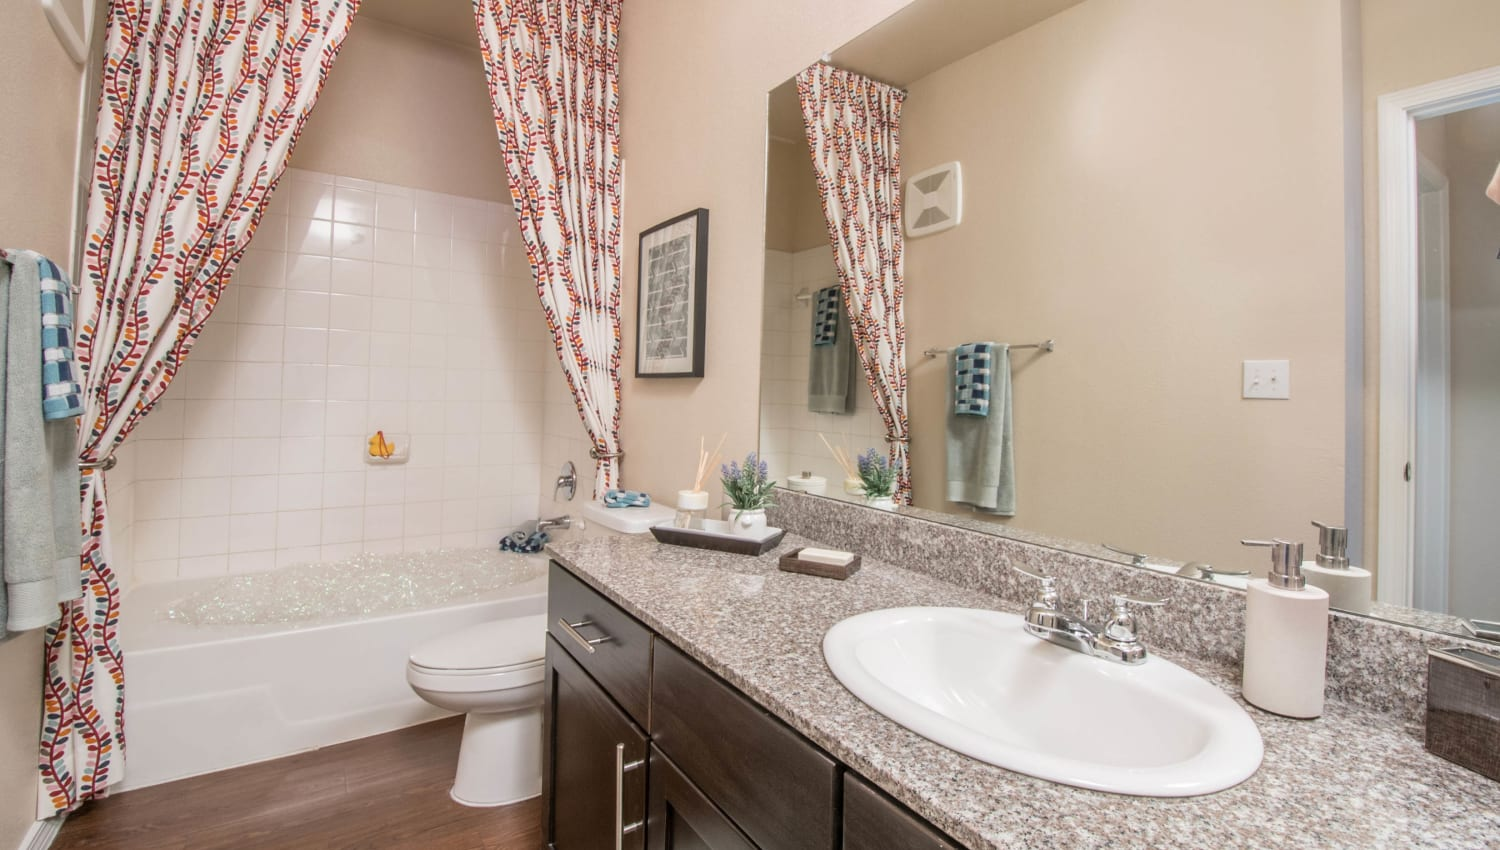 Guest bathroom with a granite countertop in a model apartment at Carrington Oaks in Buda, Texas